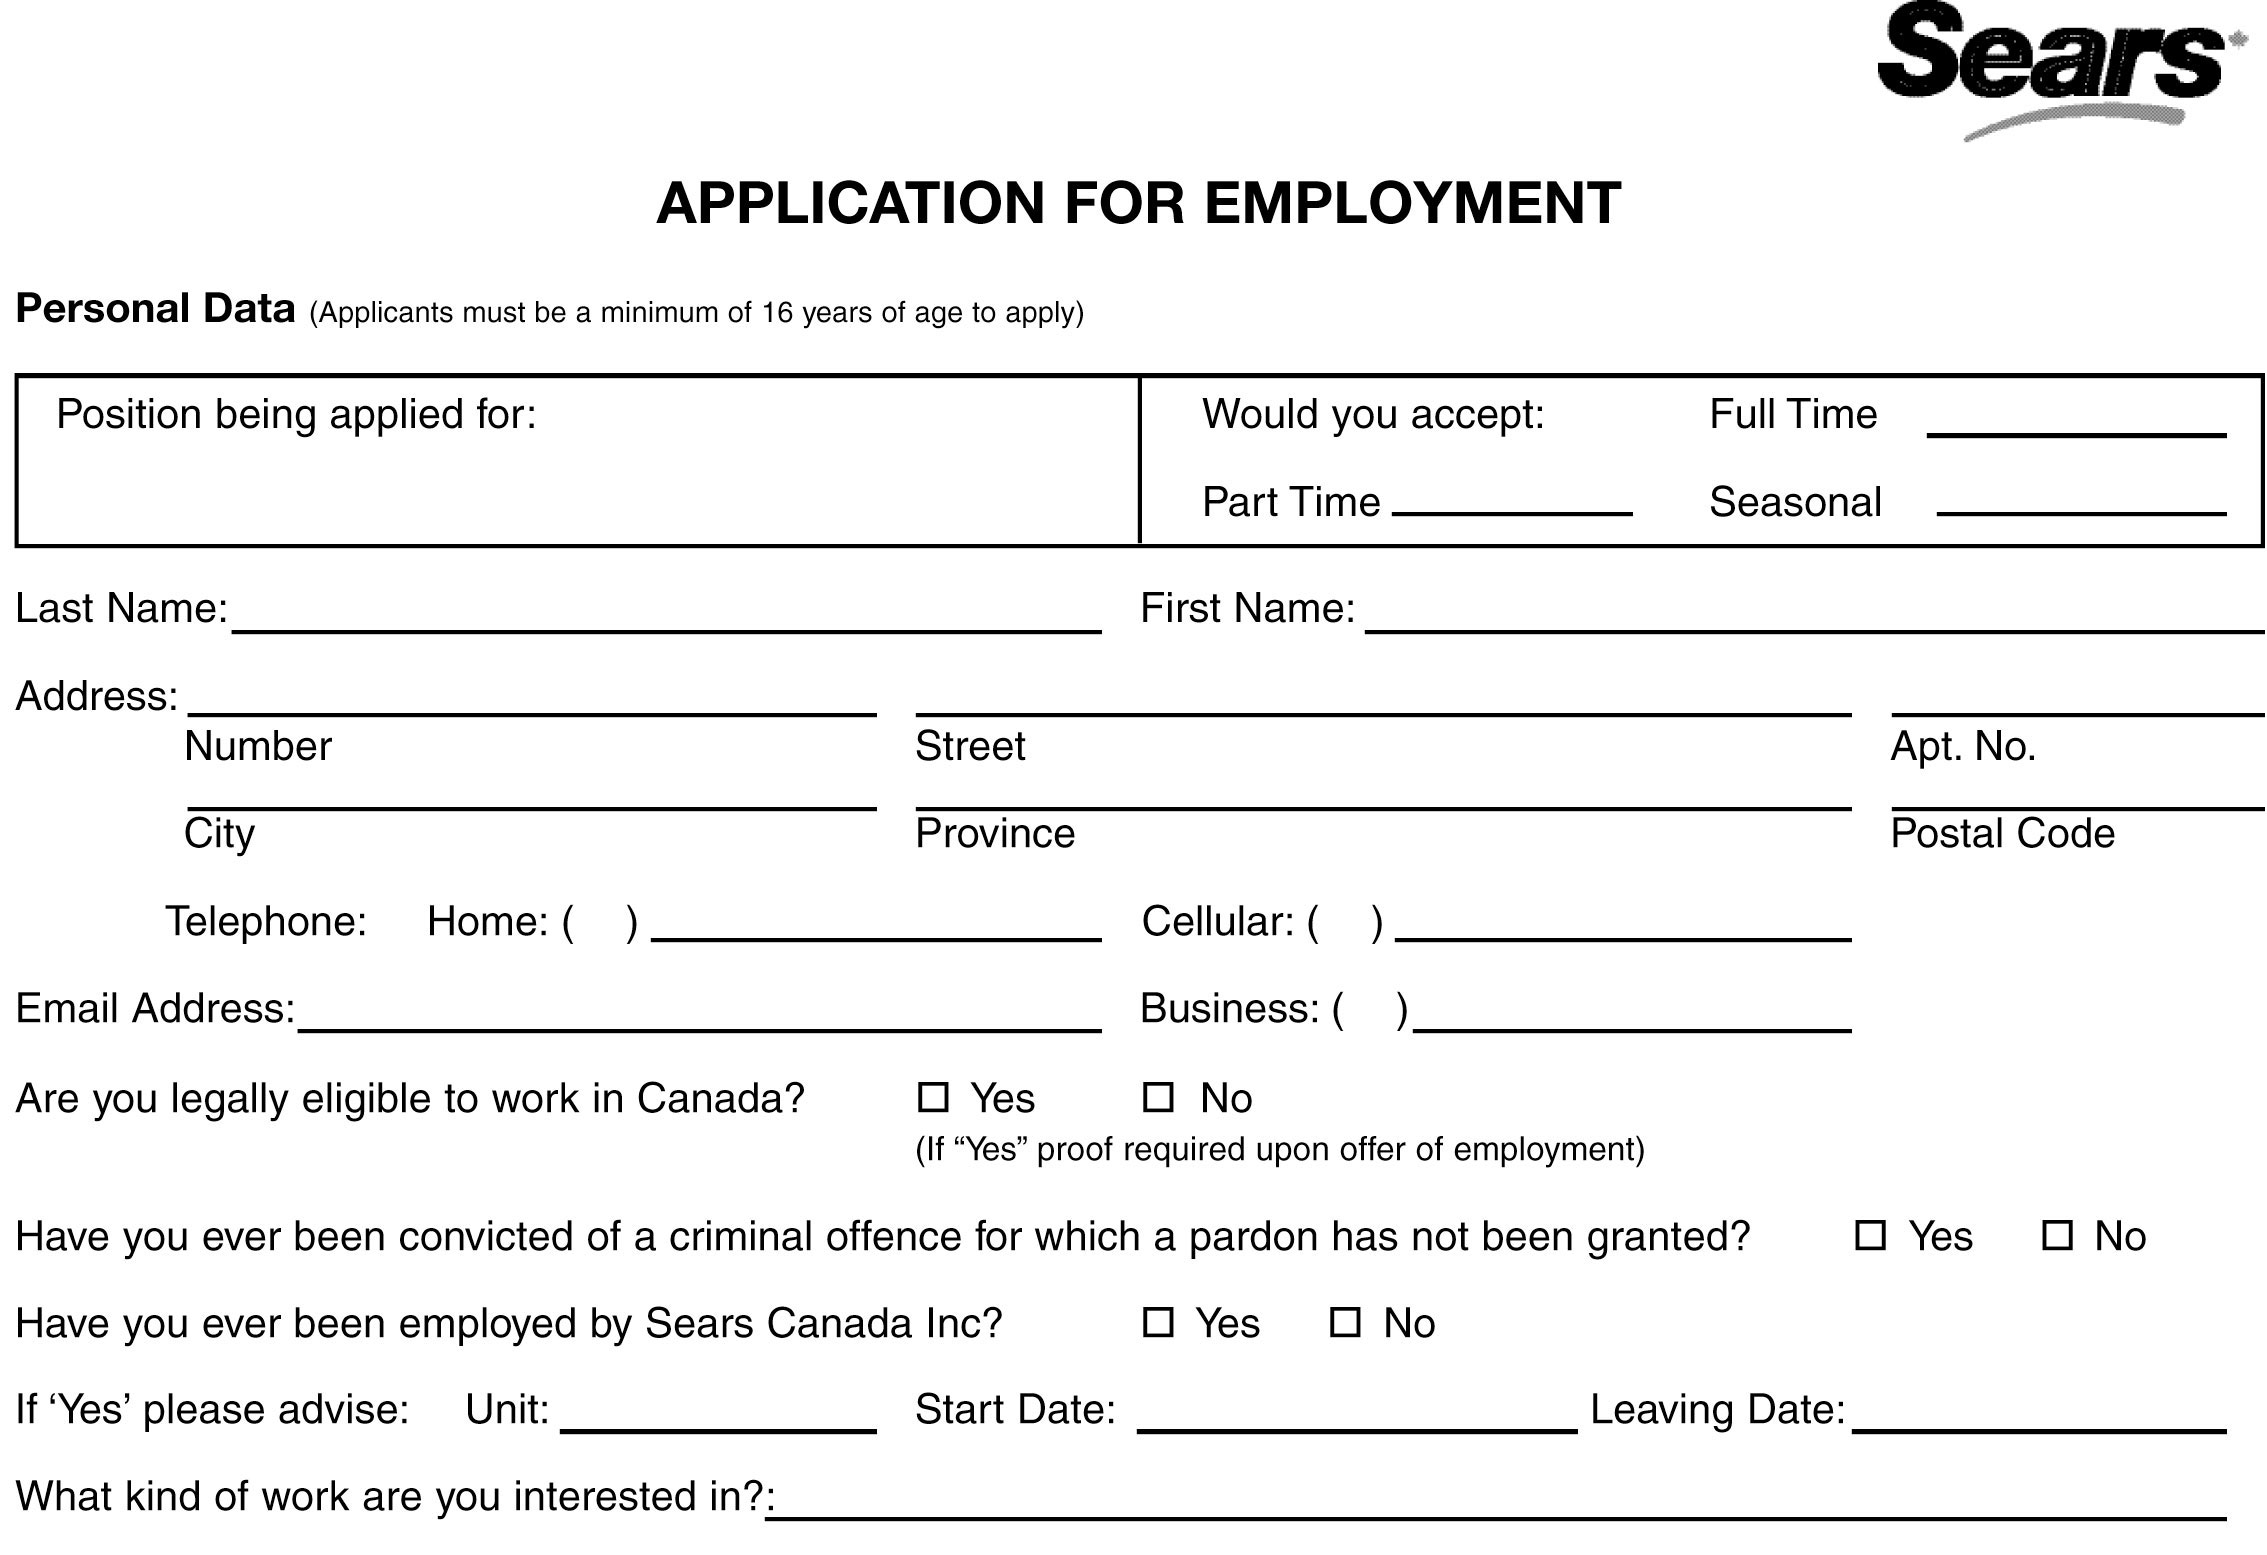 job application for home depot sample customer service resume job application for home depot home depot application job applications 1 online sear s job application printable